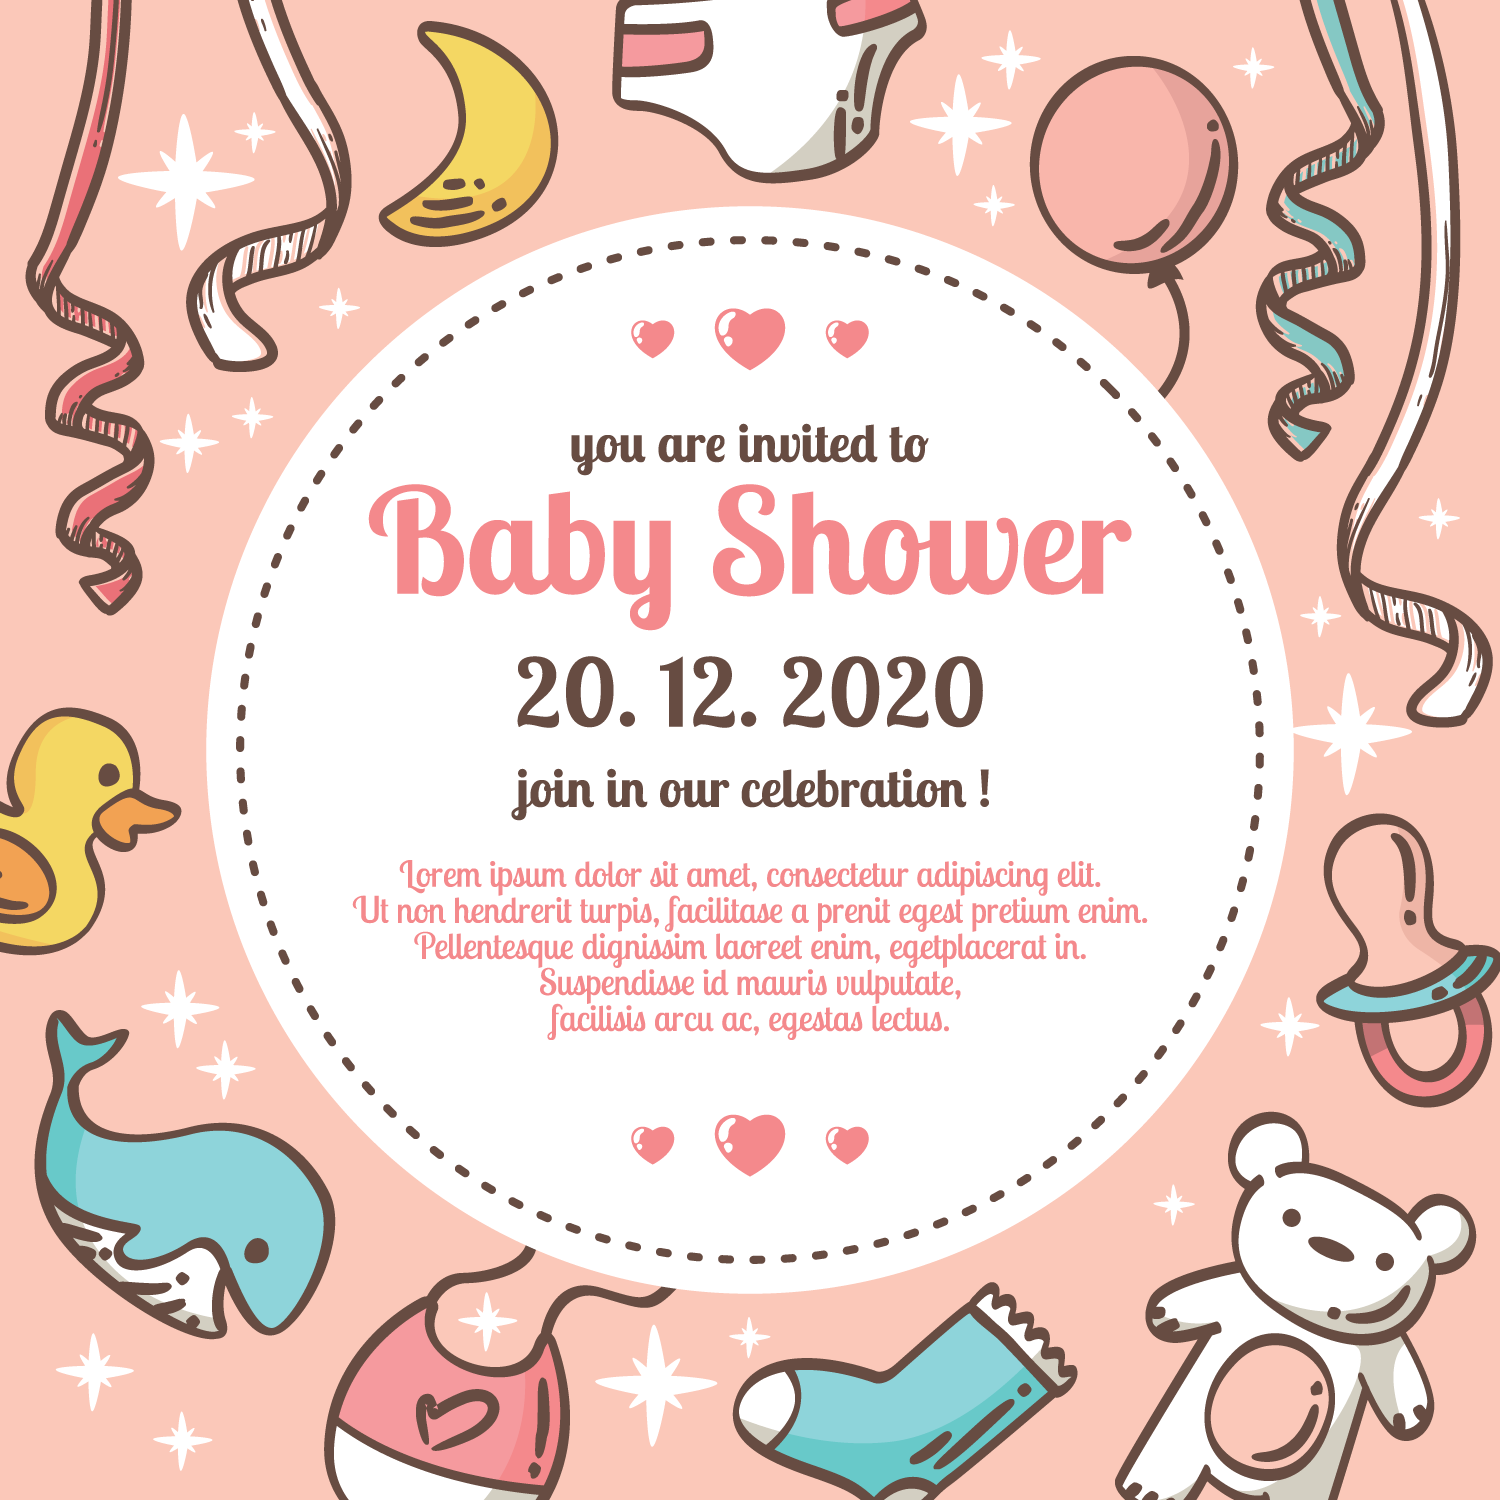 Babyshower Vector Illustration   Download Free Vector Art, Stock Graphics U0026  Images